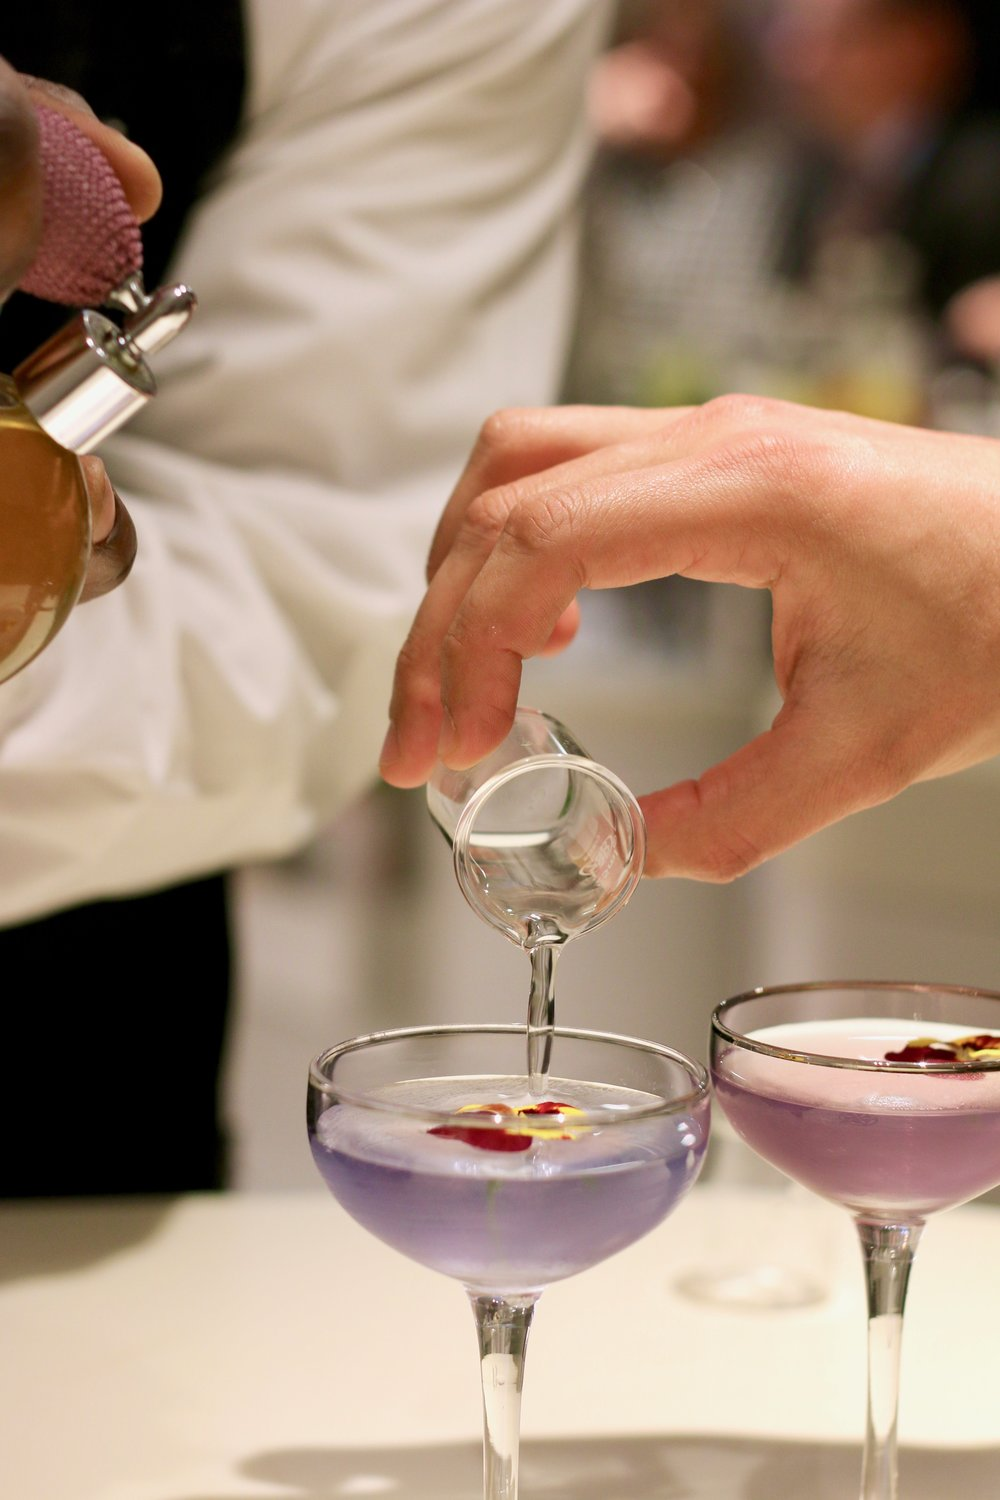 The floral cocktail changes colors as it is prepared.